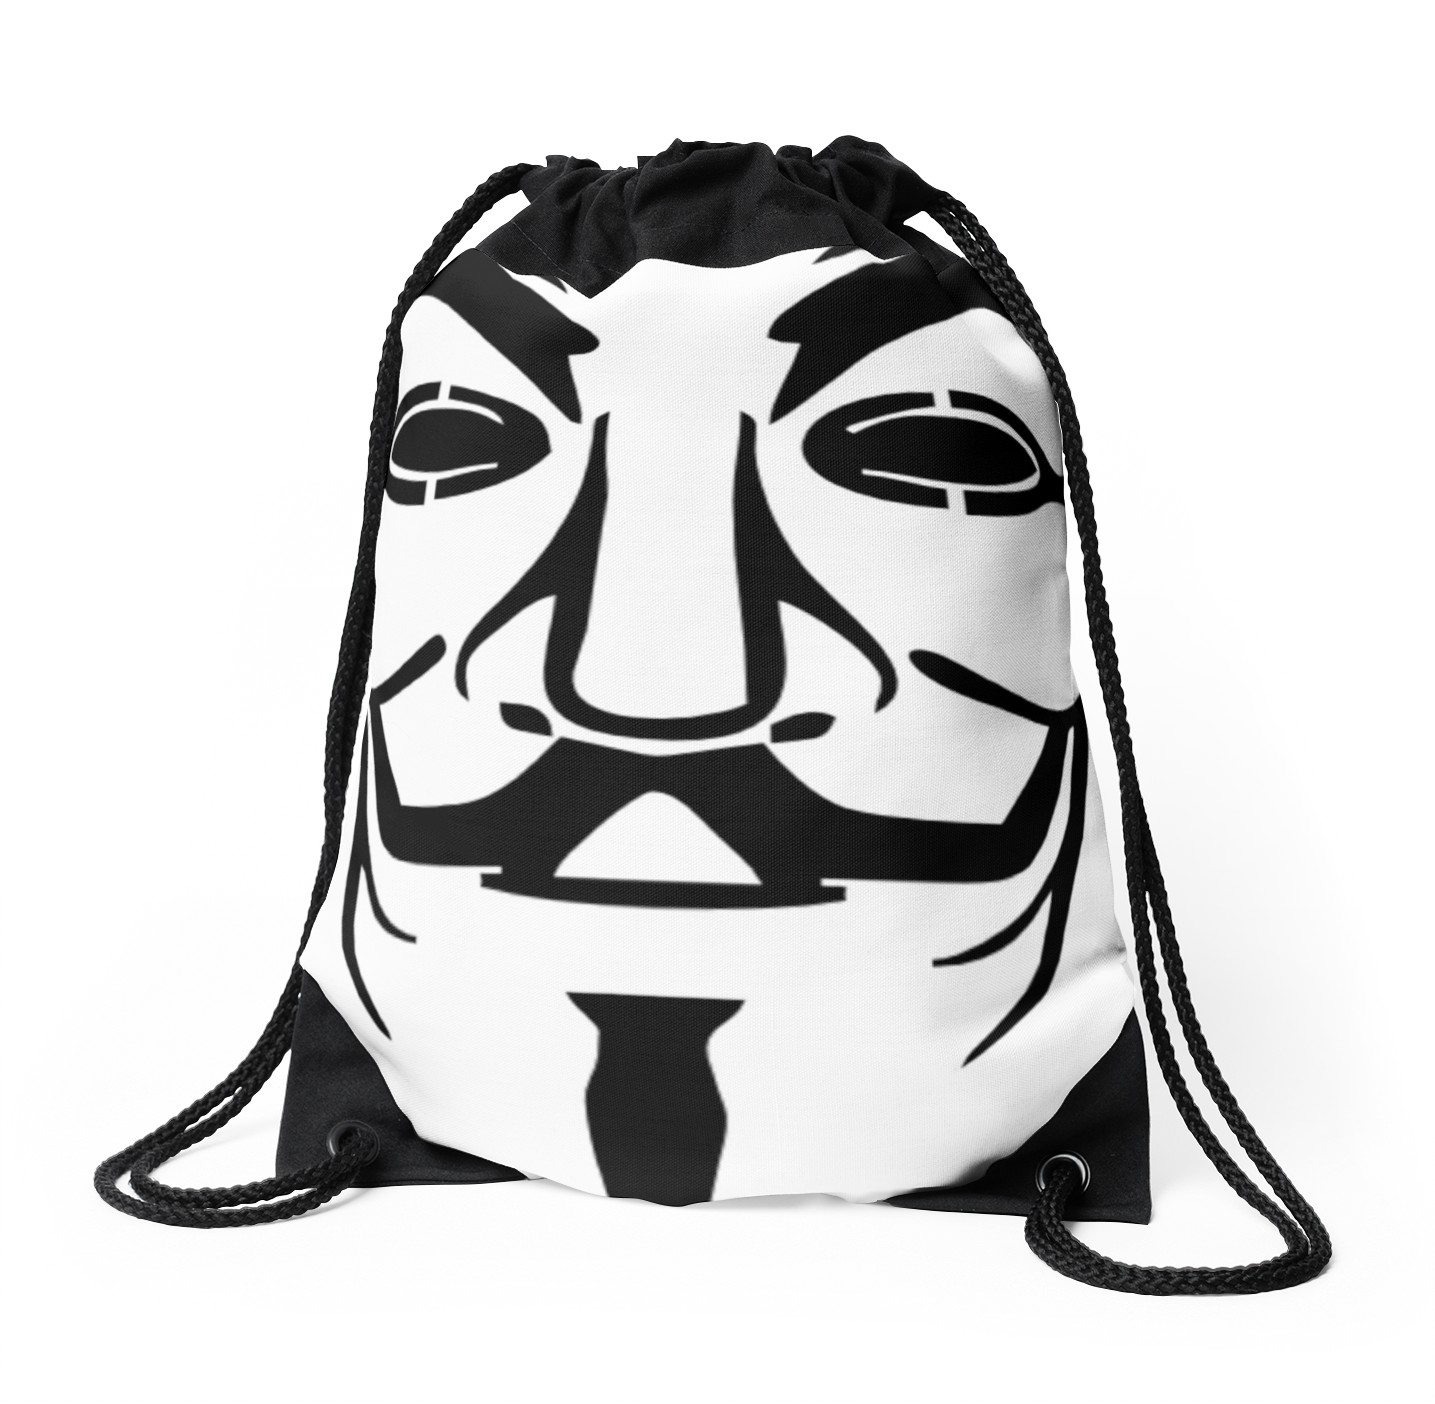 1435x1404 Anonymous Mask Silhouette Drawstring Bags By Ravanna Lotus